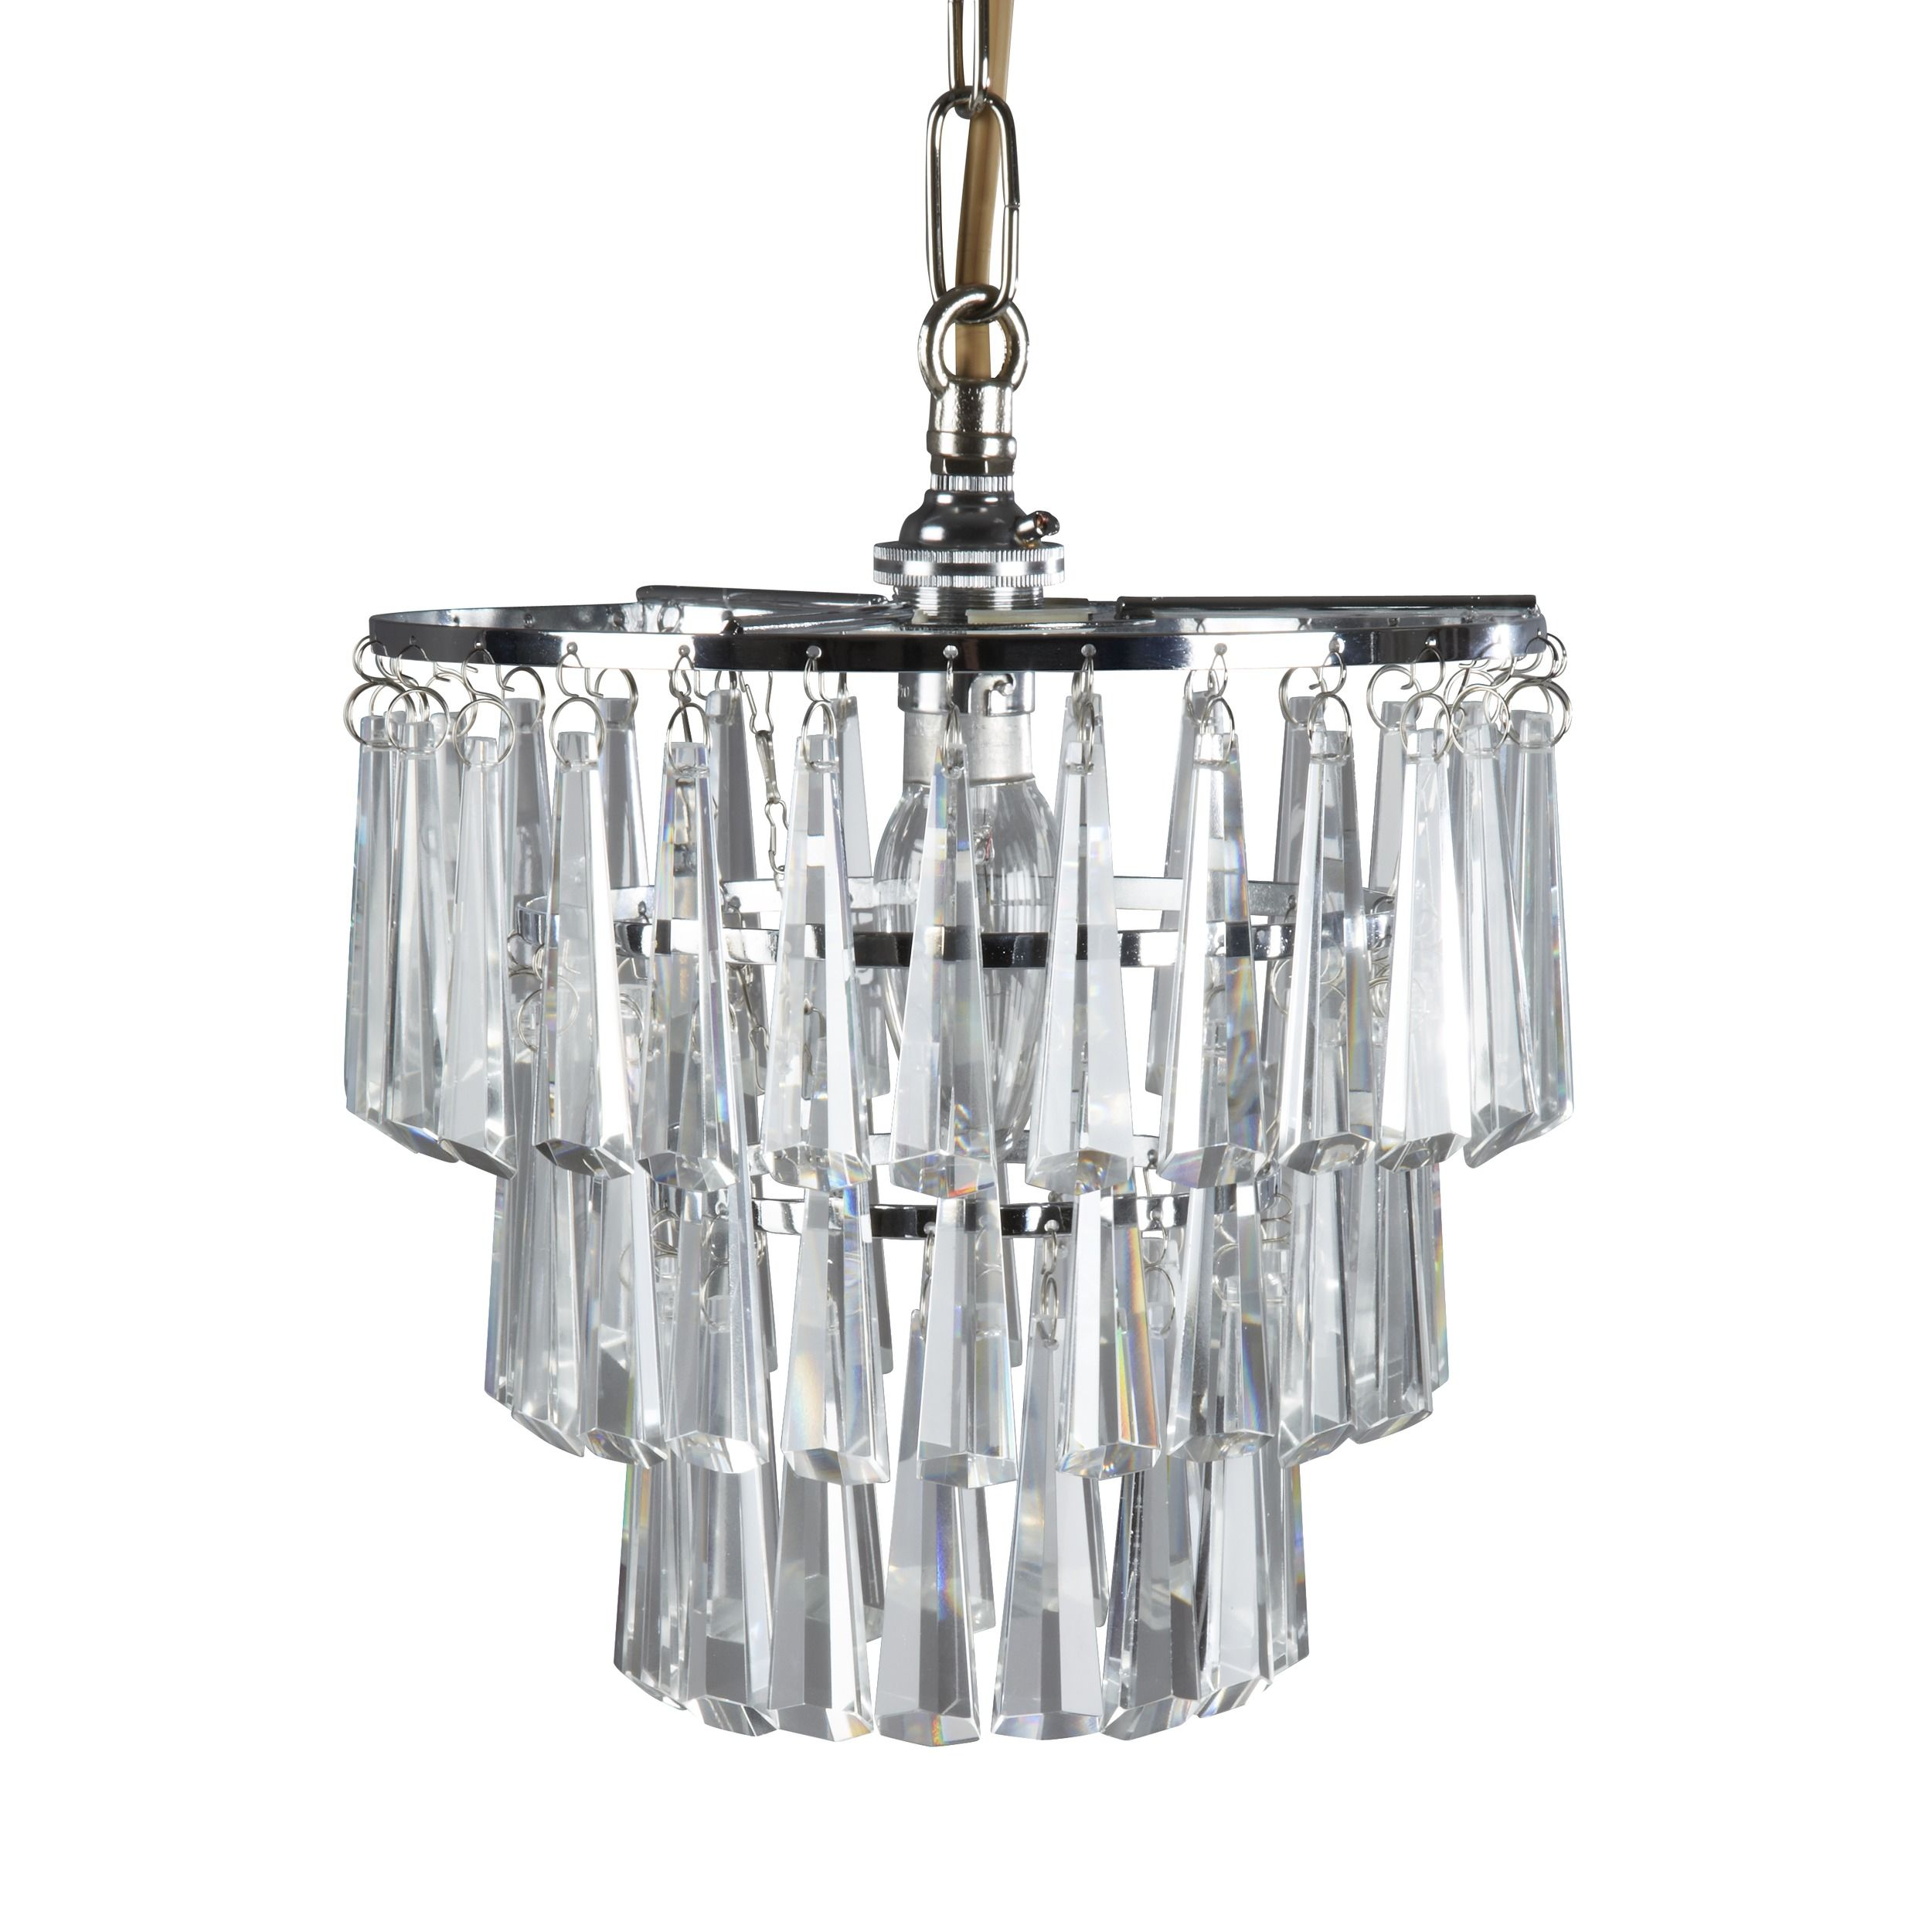 Crystal Chandelier Laura Ashley: Issy Easy Fit Pendant Light From Laura Ashley Home